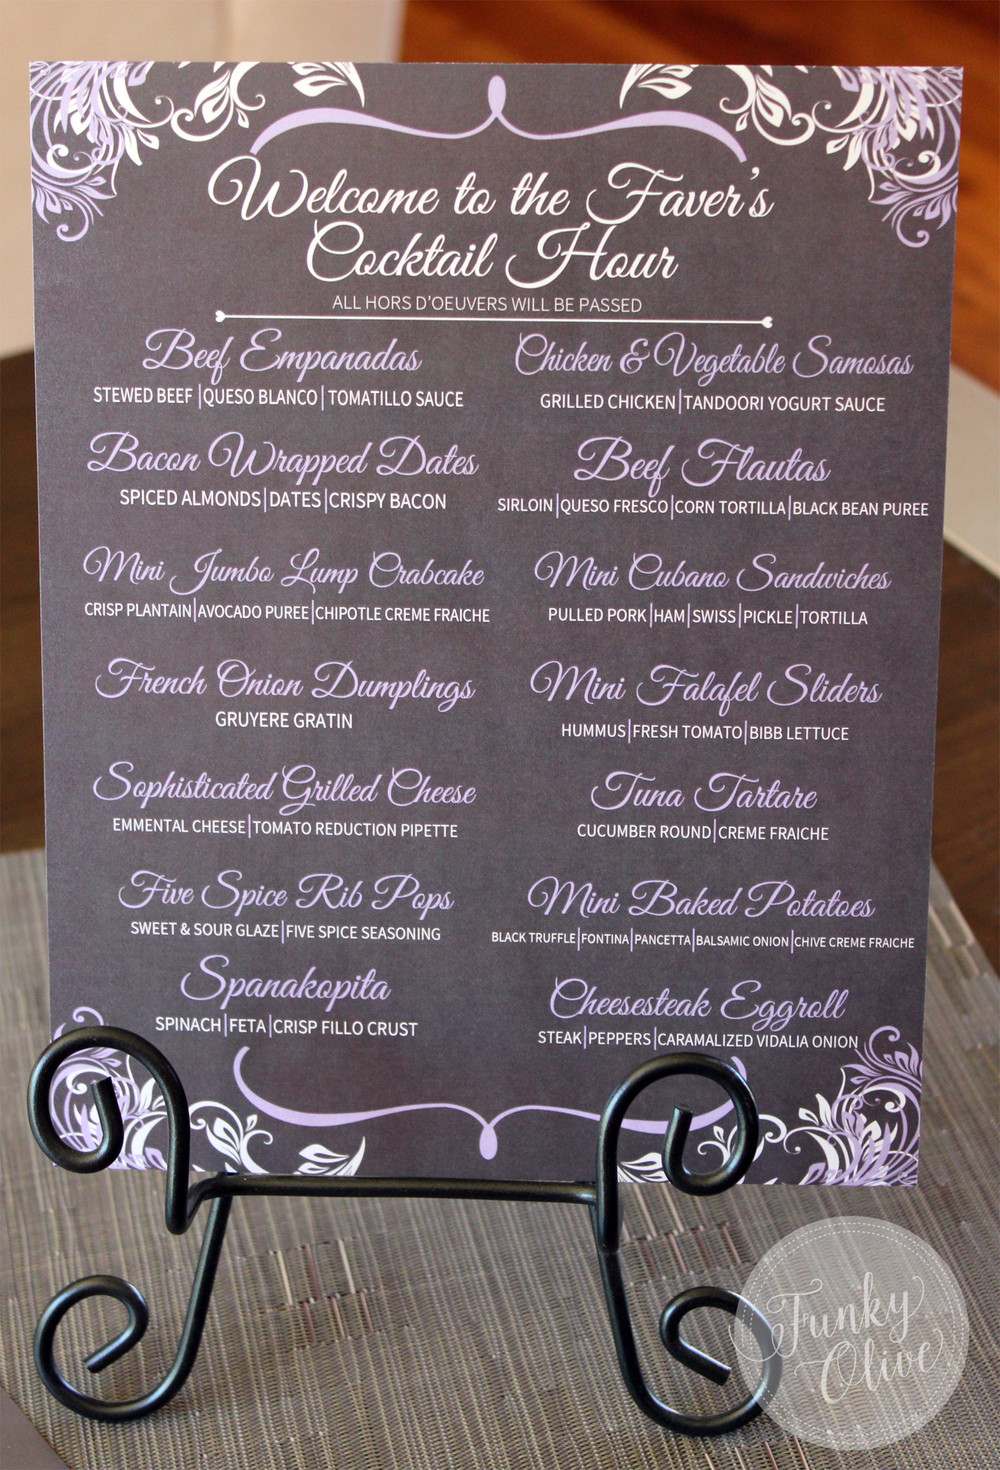 COCKTAIL HOUR SIGN.jpg